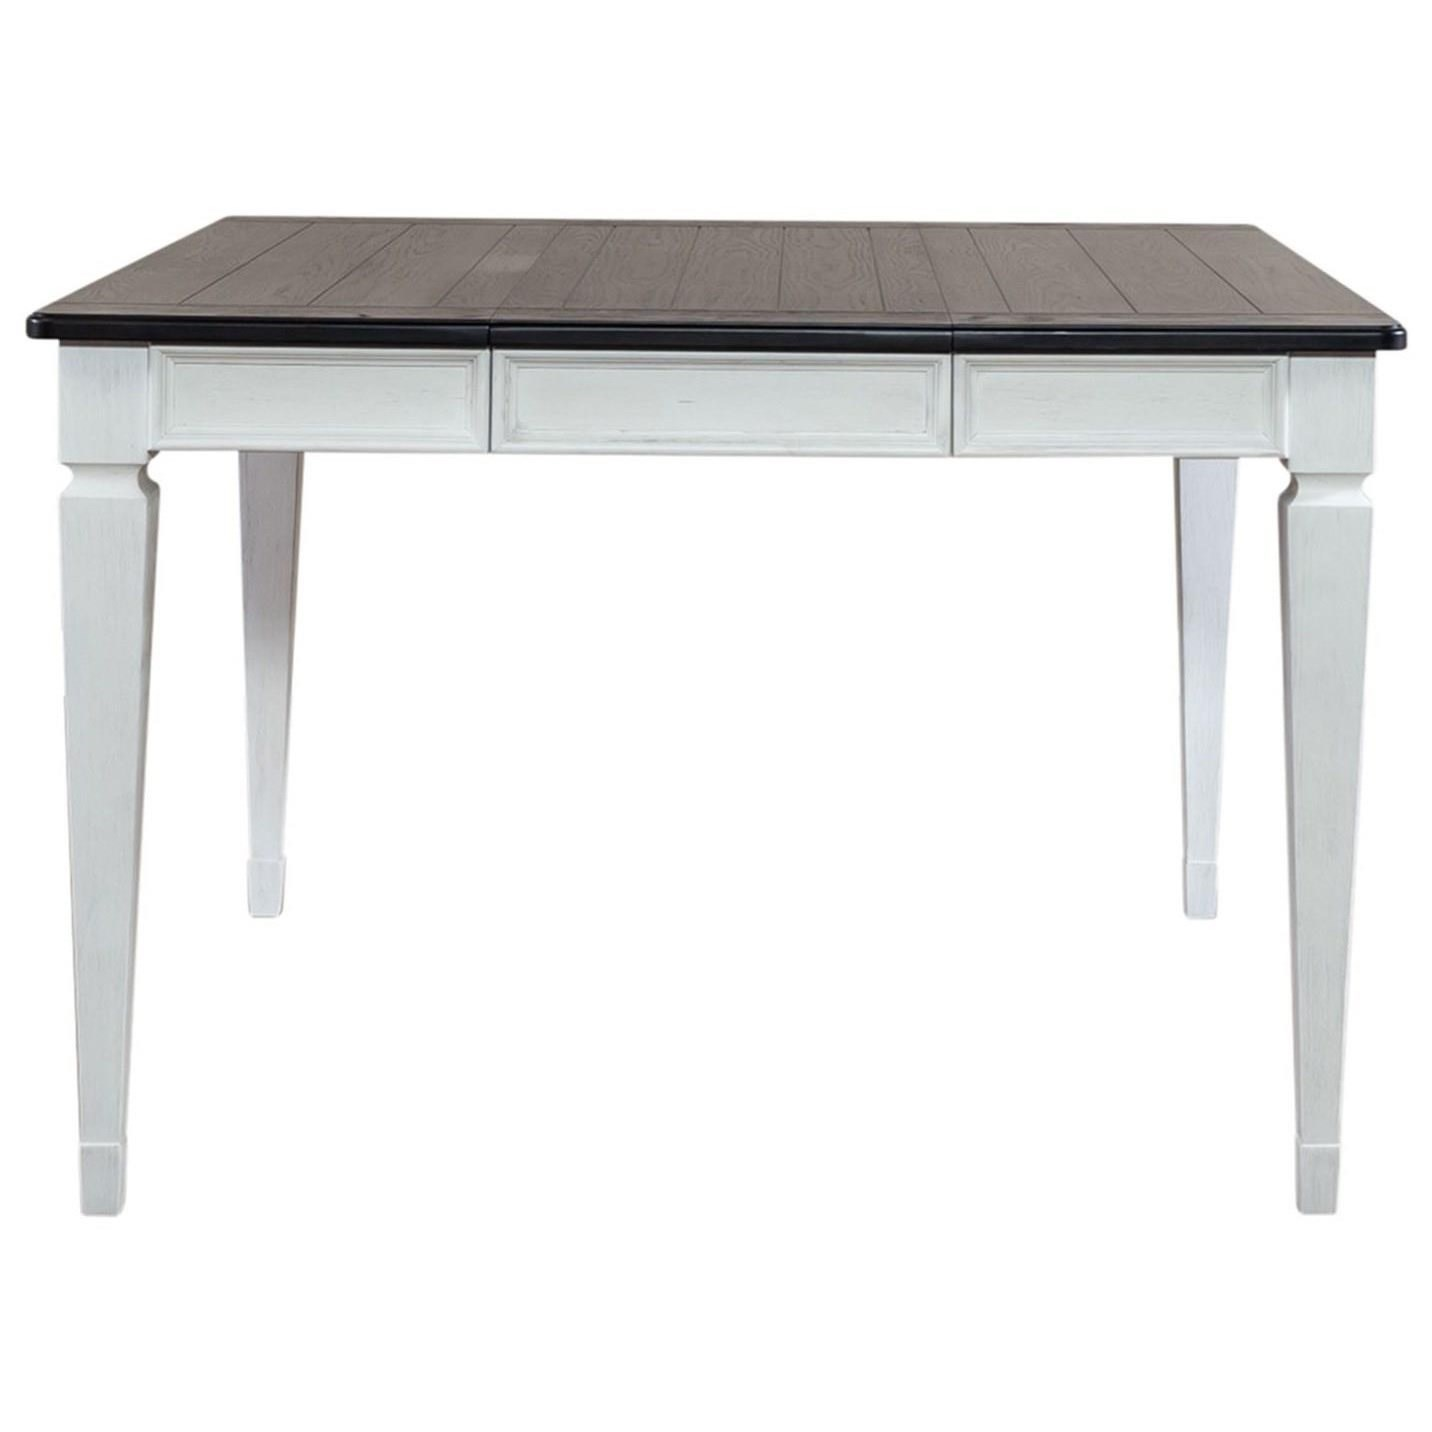 Allyson Park Counter Height Leg Table by Liberty Furniture at Catalog Outlet